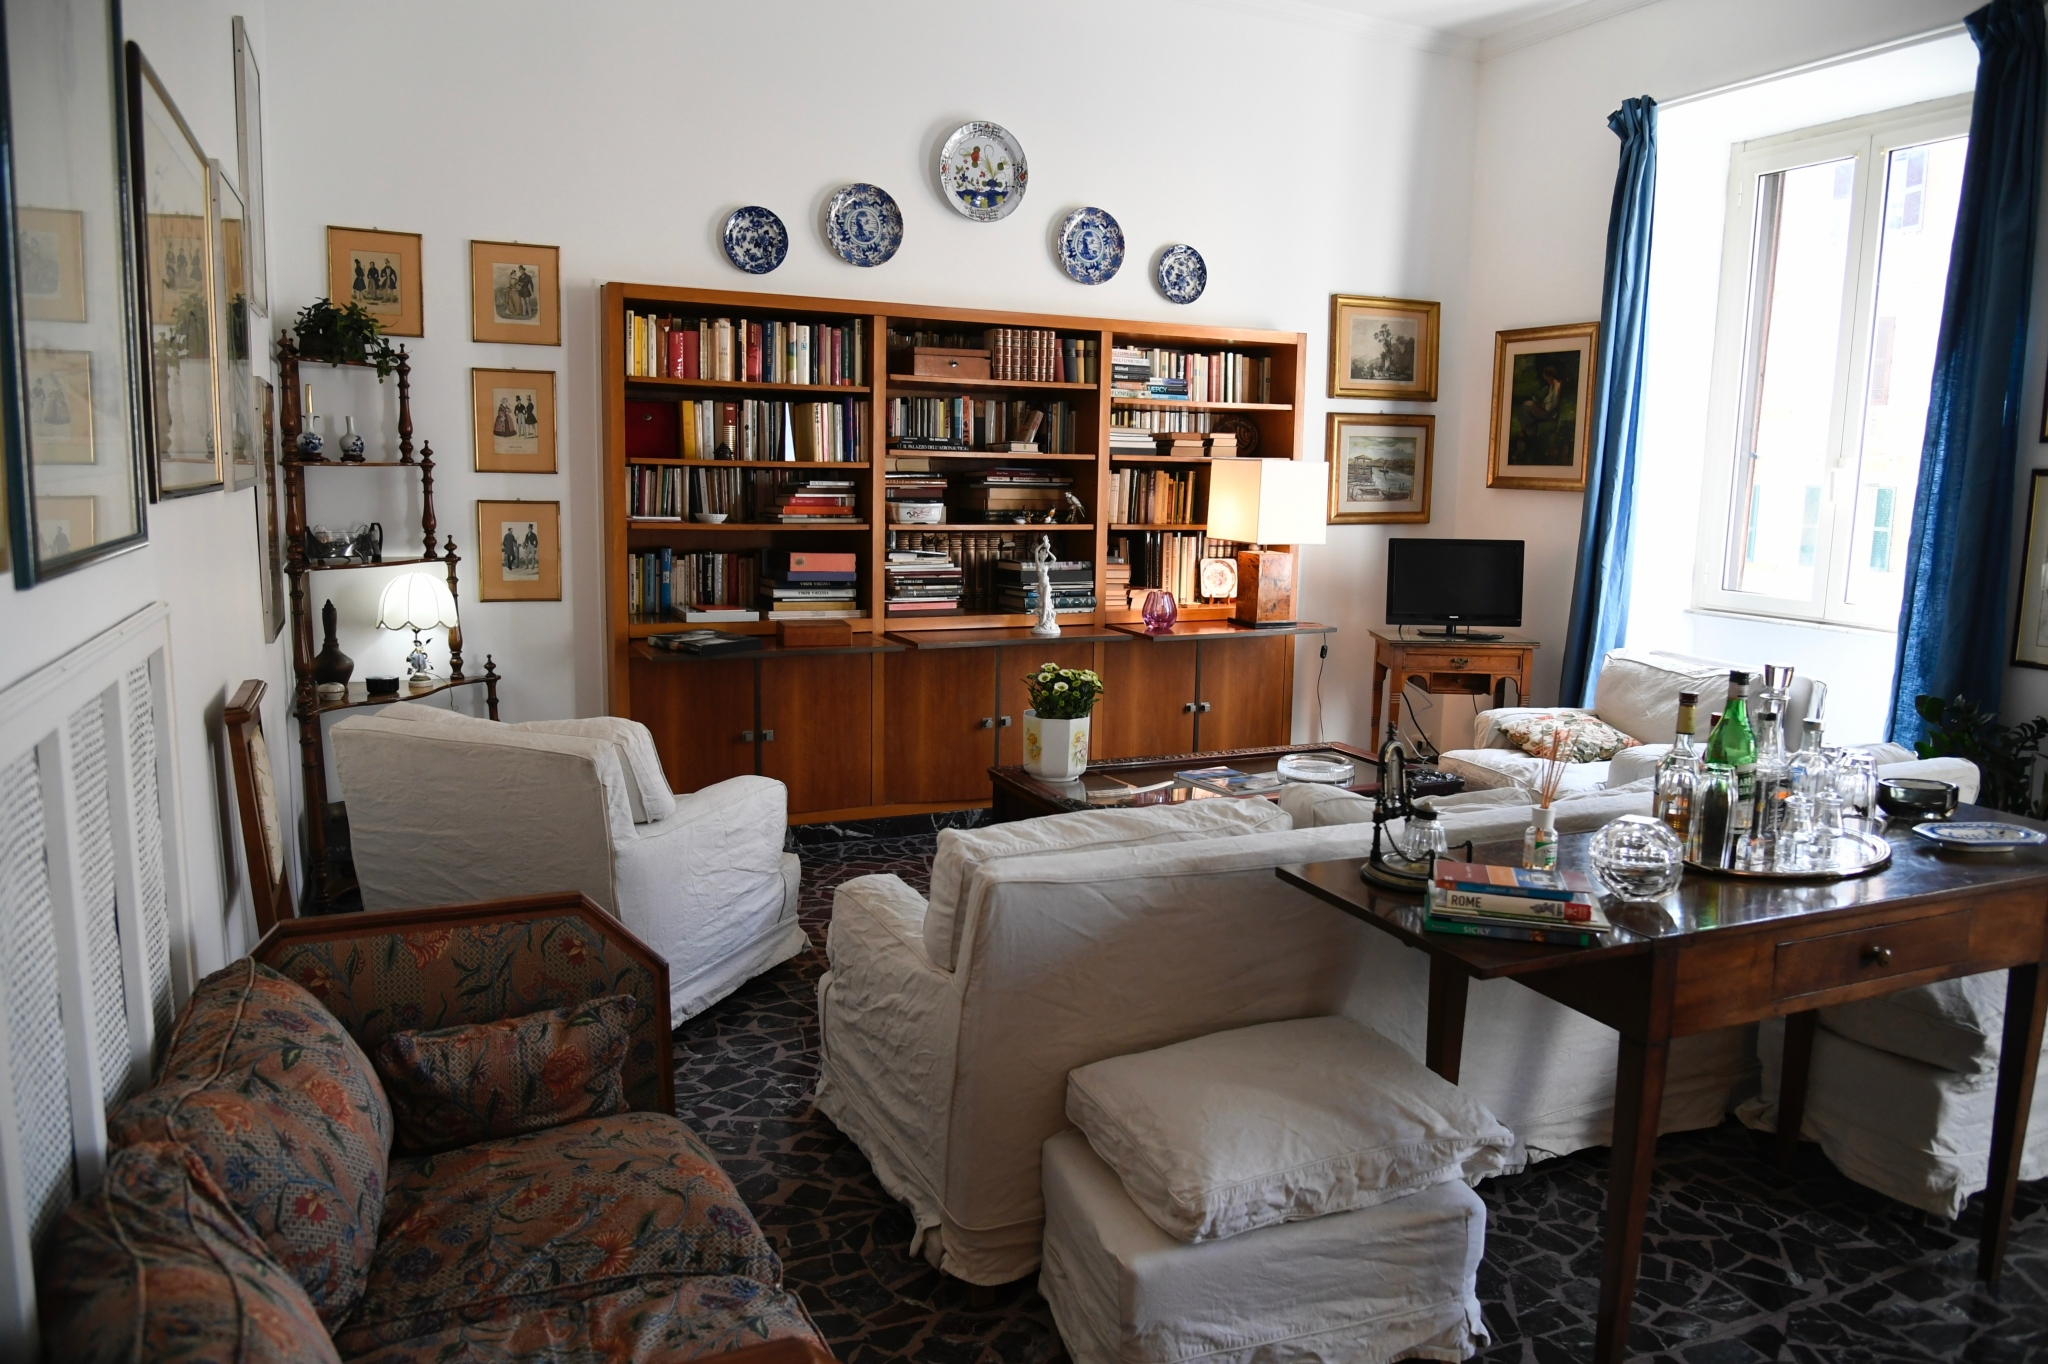 Rome Vacation Rental: 2 bedroom, WIFI, Prati. Apartment ...